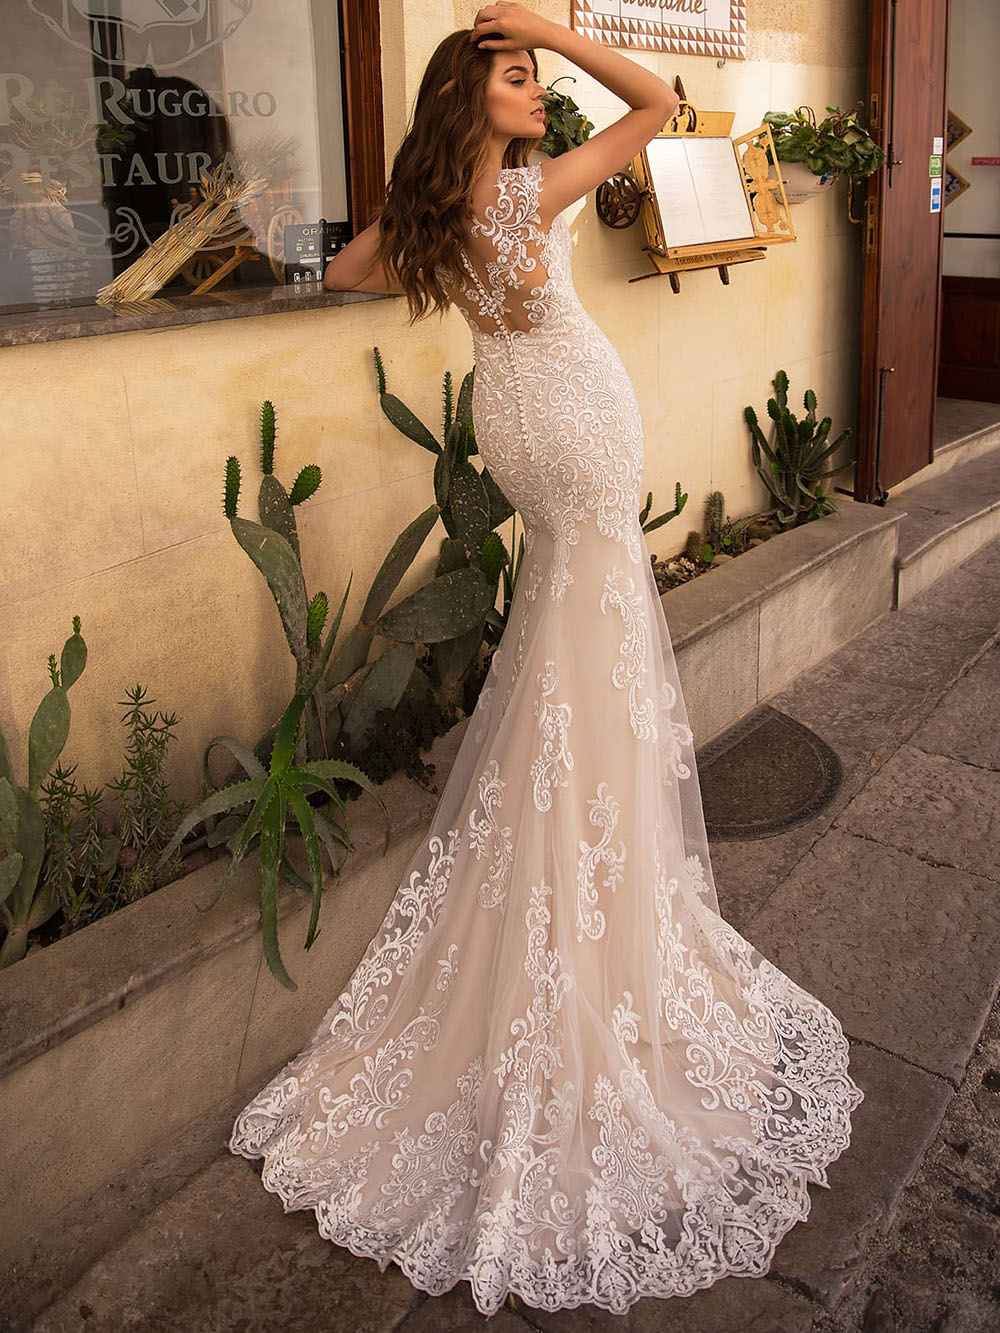 20 New O Neck Cap Sleeve Illusion Button Sexy Mermaid Wedding Dresses  Appliqued Detachable Skirt Floor Length Bridal Gowns